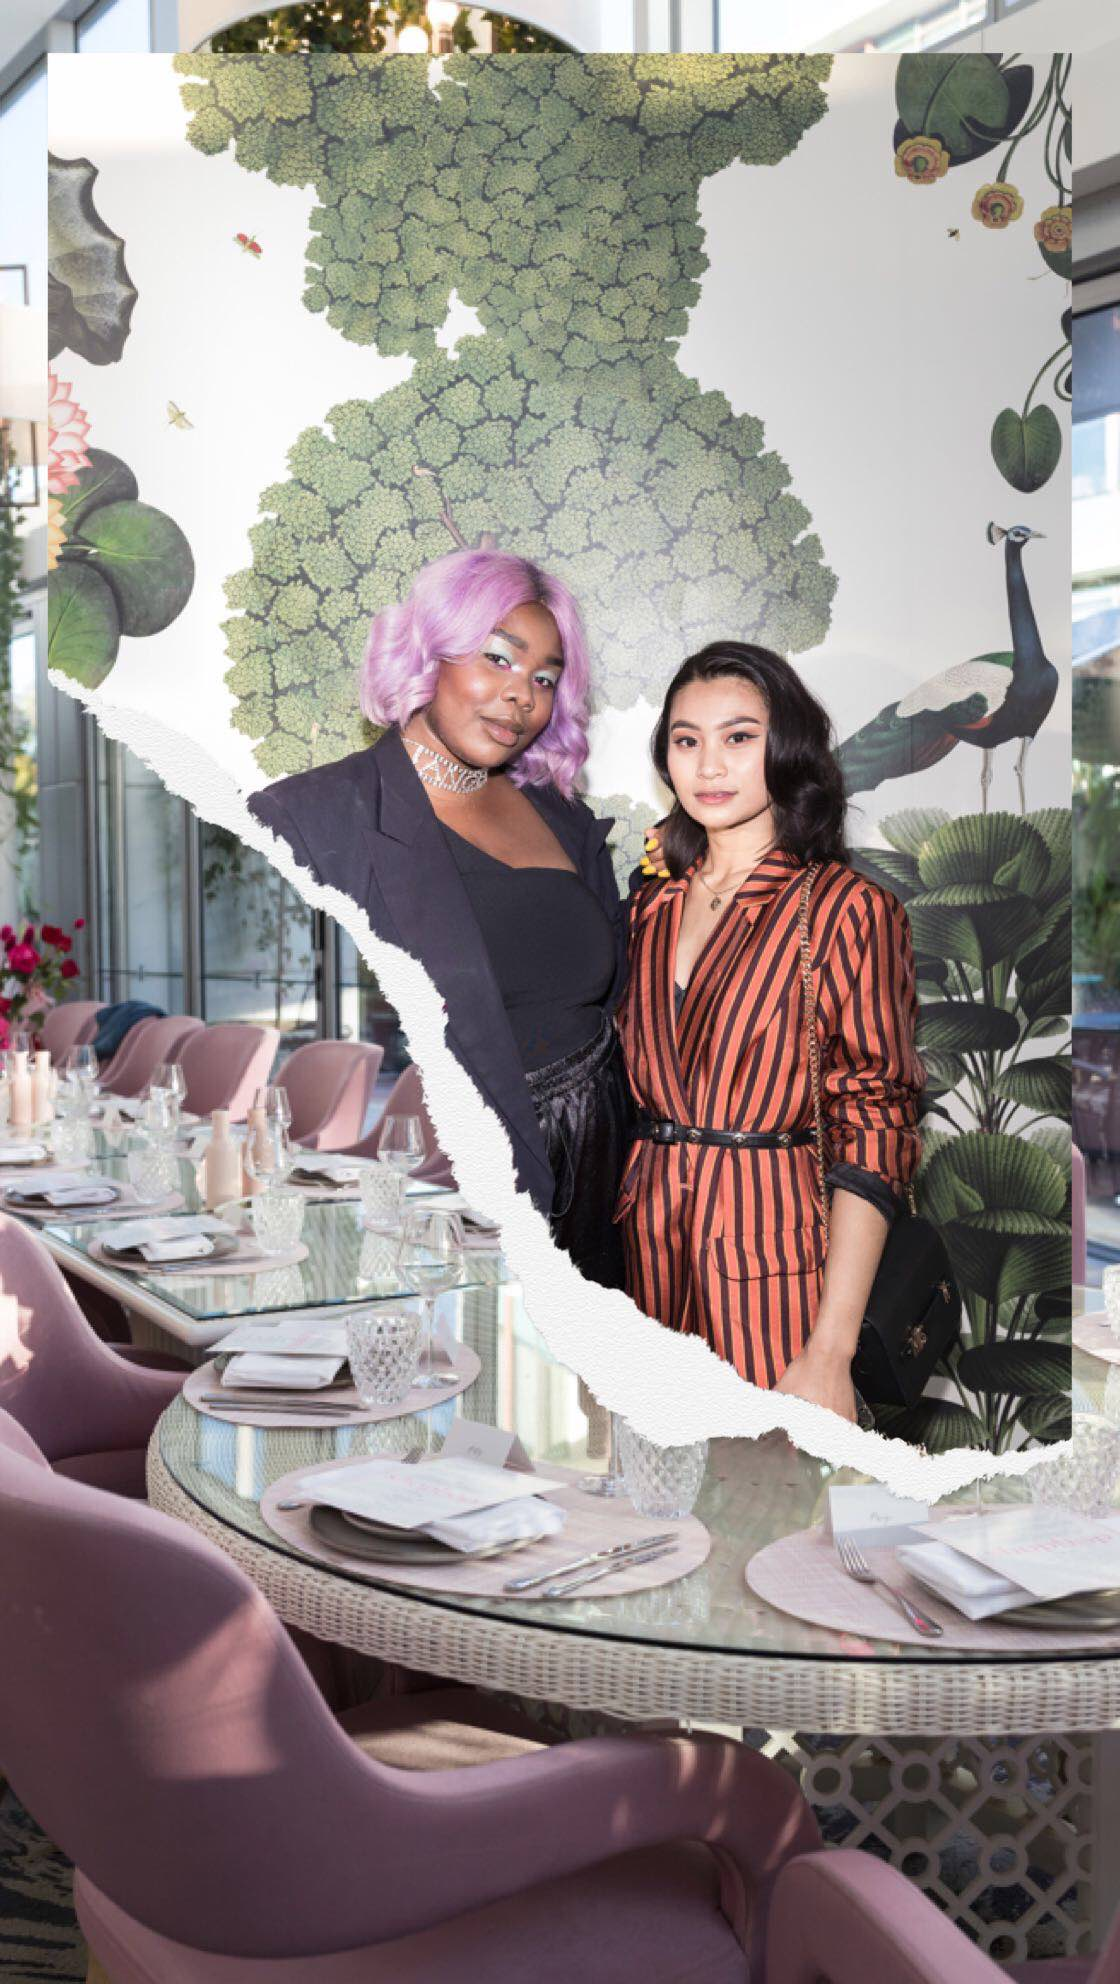 Shopbop x Botanica Dinner - Flex Mami